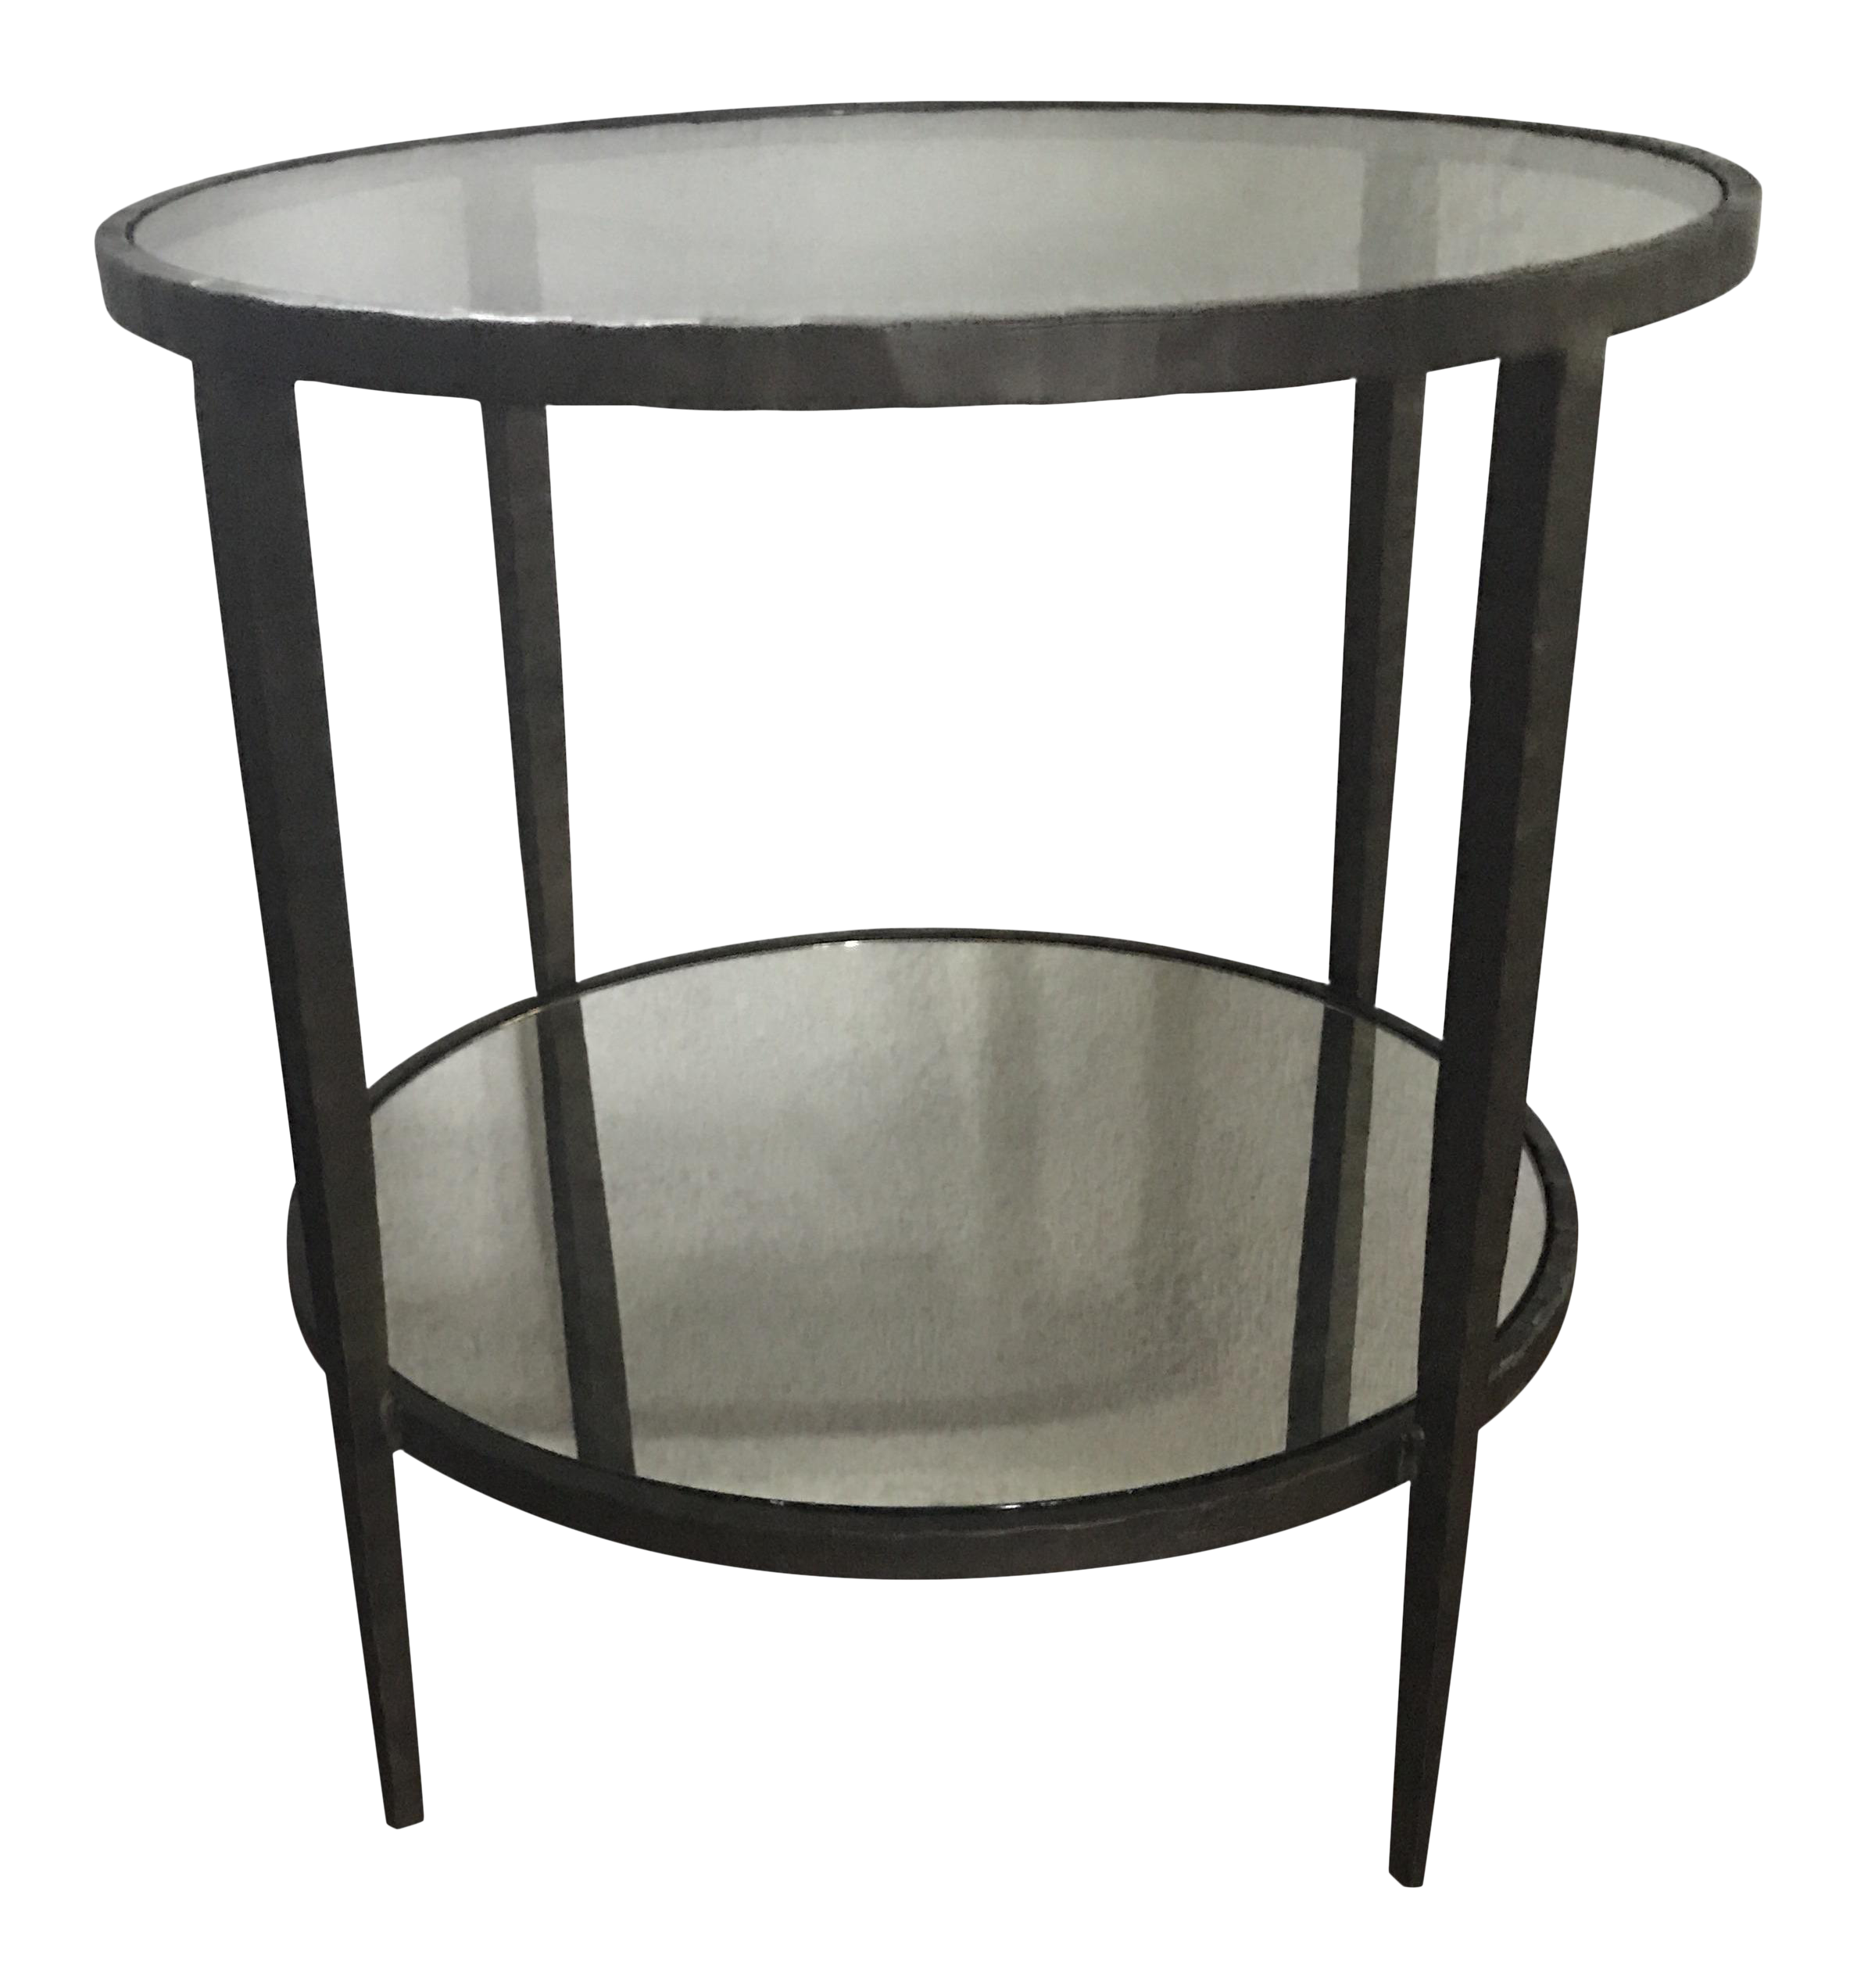 Is crate and barrel furniture good quality - Crate Barrel Clairemont Side Table